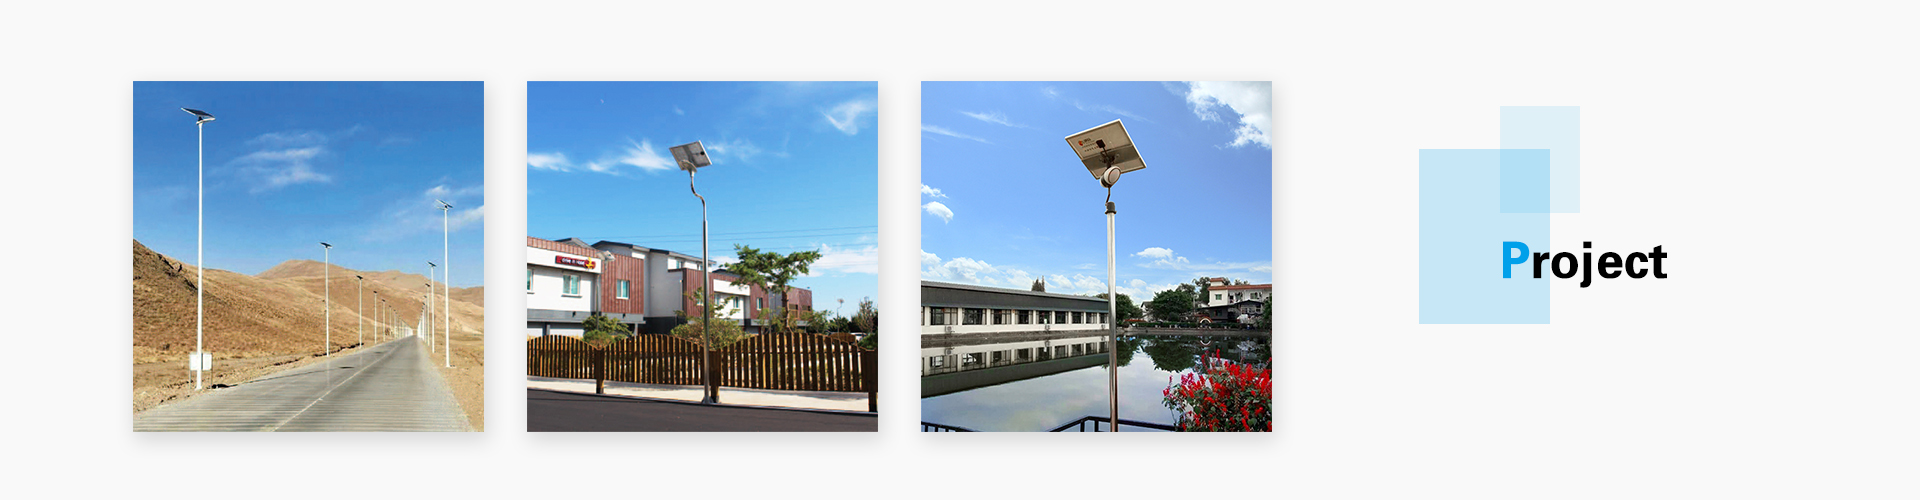 Solar Street Light-Solar Garden Light-Outdoor Solar Light-Road Smart